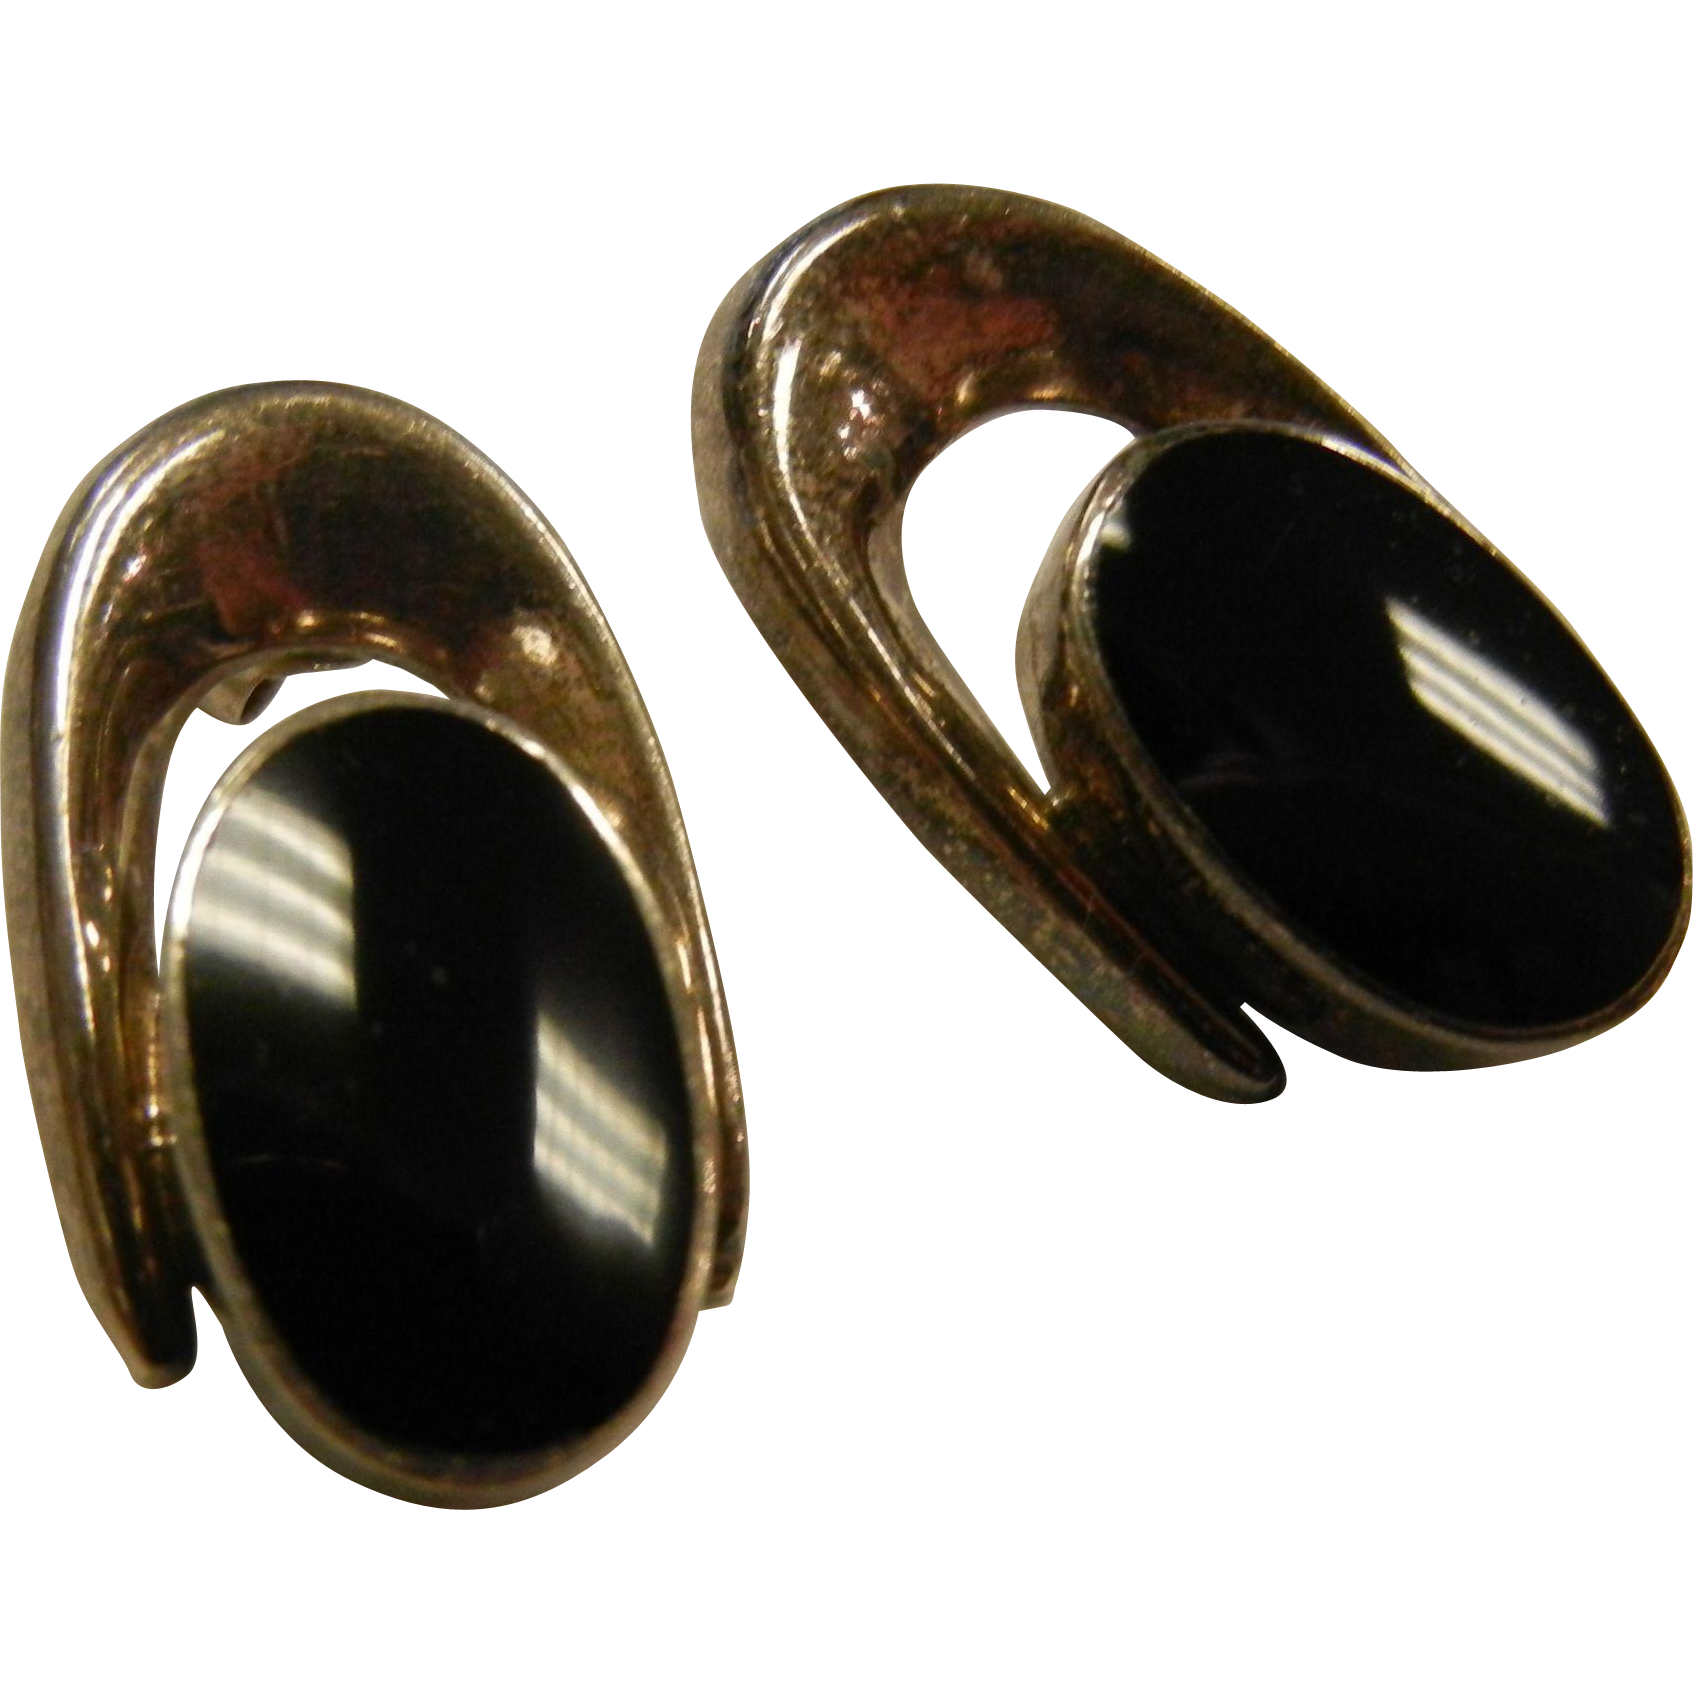 Vintage Modernist Sterling Silver Earrings w/ Polished Black Stone